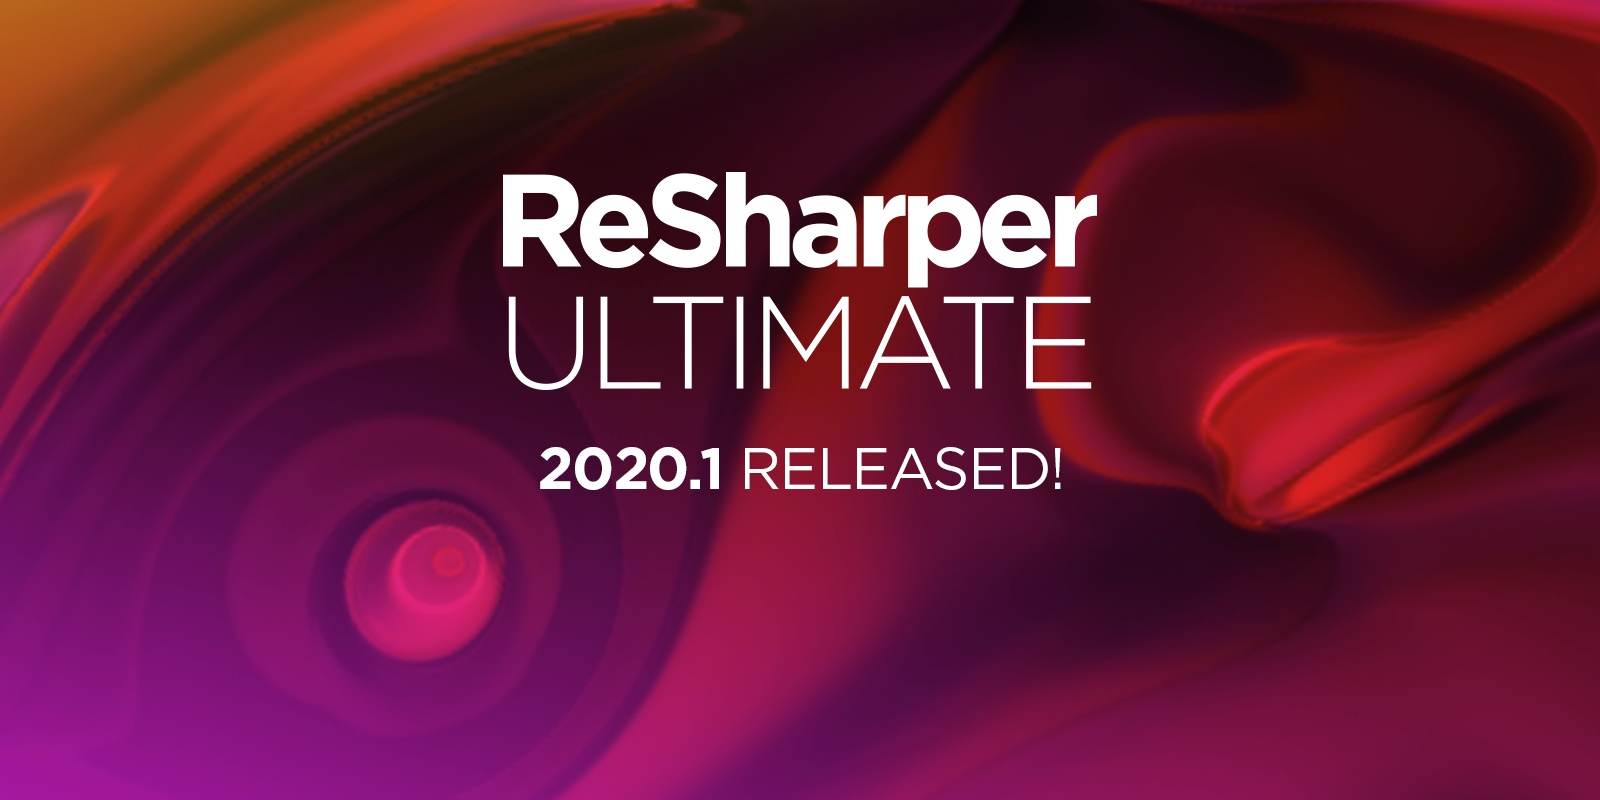 ReSharper Ultimate 2020.1 is released